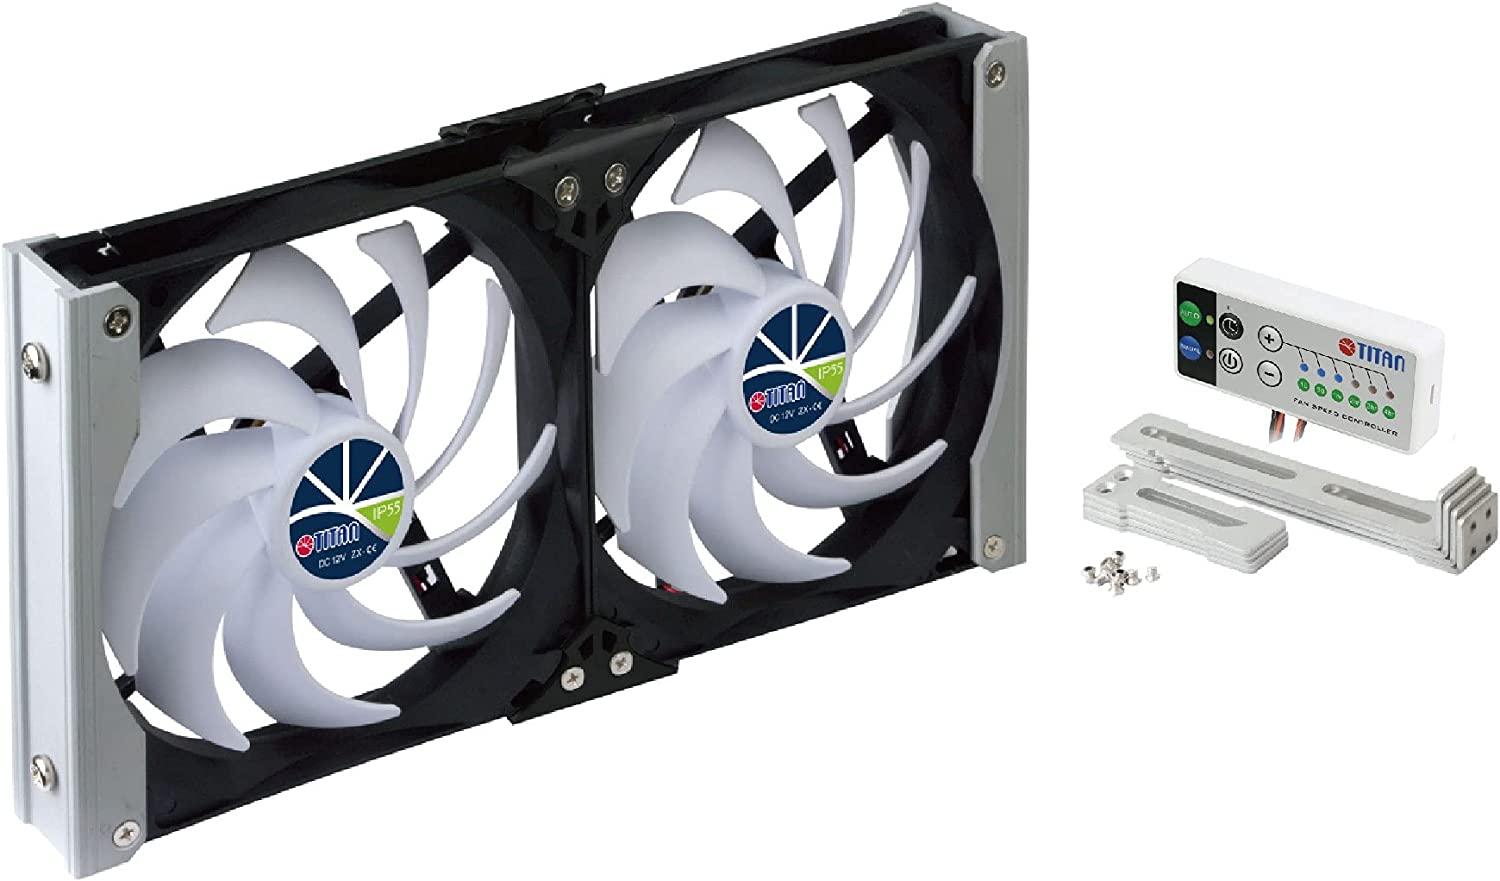 TITAN- 12V DC IP55 Waterproof Double Rack Mount Ventilation Cooling Fan with Timer and Speed Controller- TTC-SC20 (140mm)